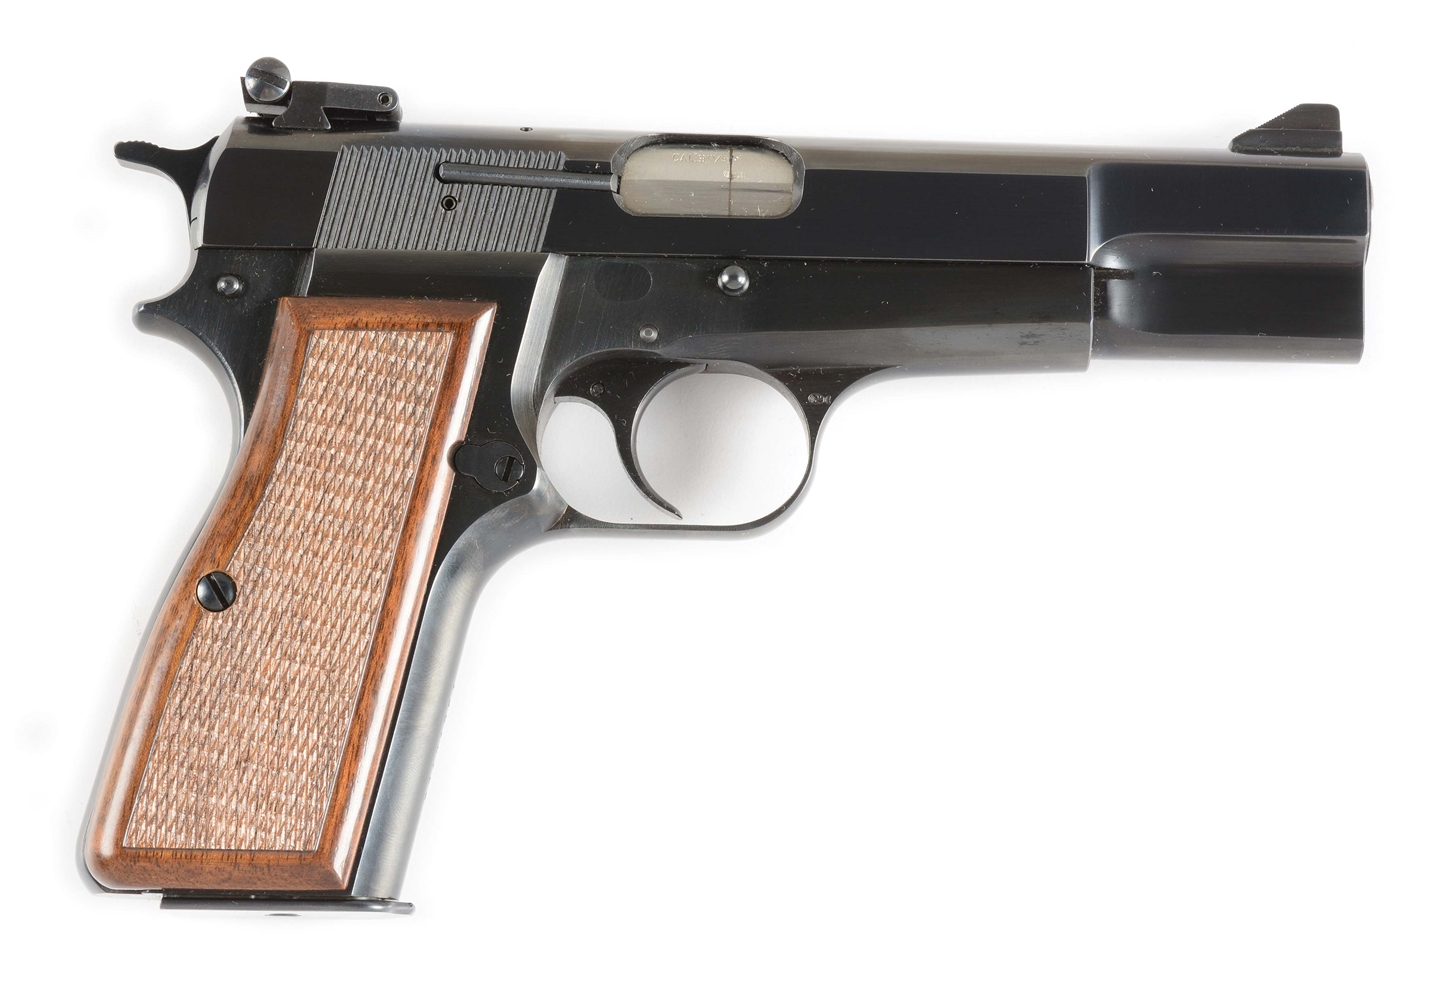 (M) Browning Hi-Power Semi-Automatic Pistol with Holster (1973).